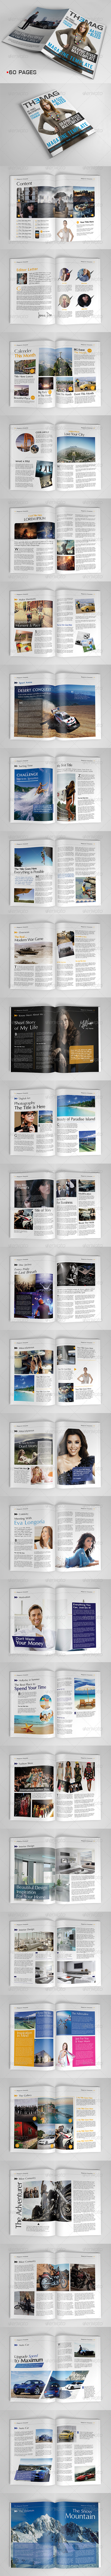 GraphicRiver A4 Magazine Template Vol 4 8305106